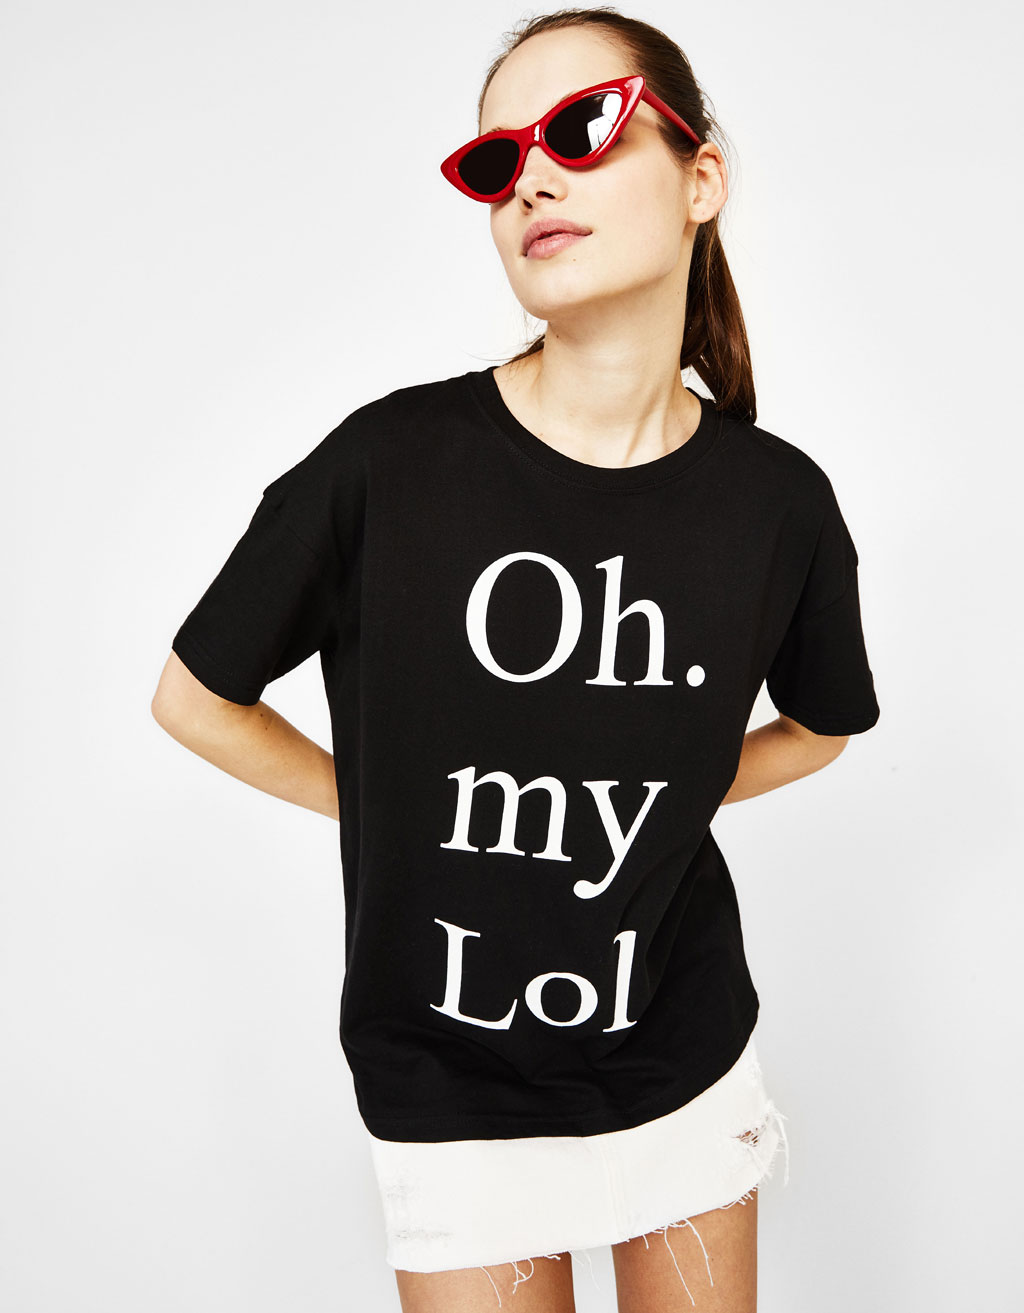 Organic cotton T-shirt with text